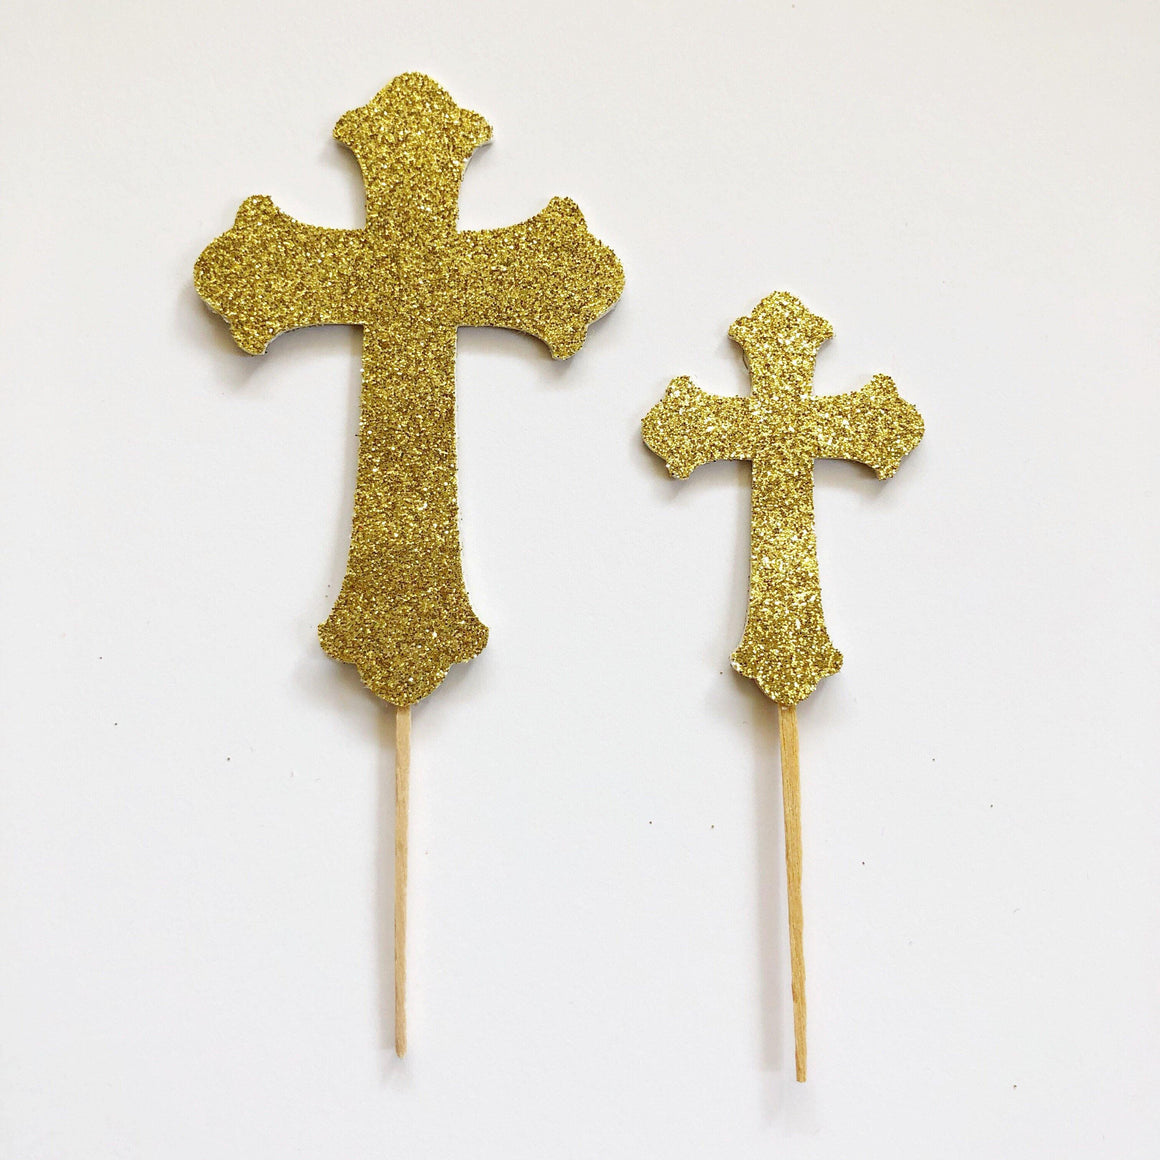 PARTY PICKS - CROSS GLITTER SMALL 2-SIDED, Picks + Toppers, BON + CO - Bon + Co. Party Studio